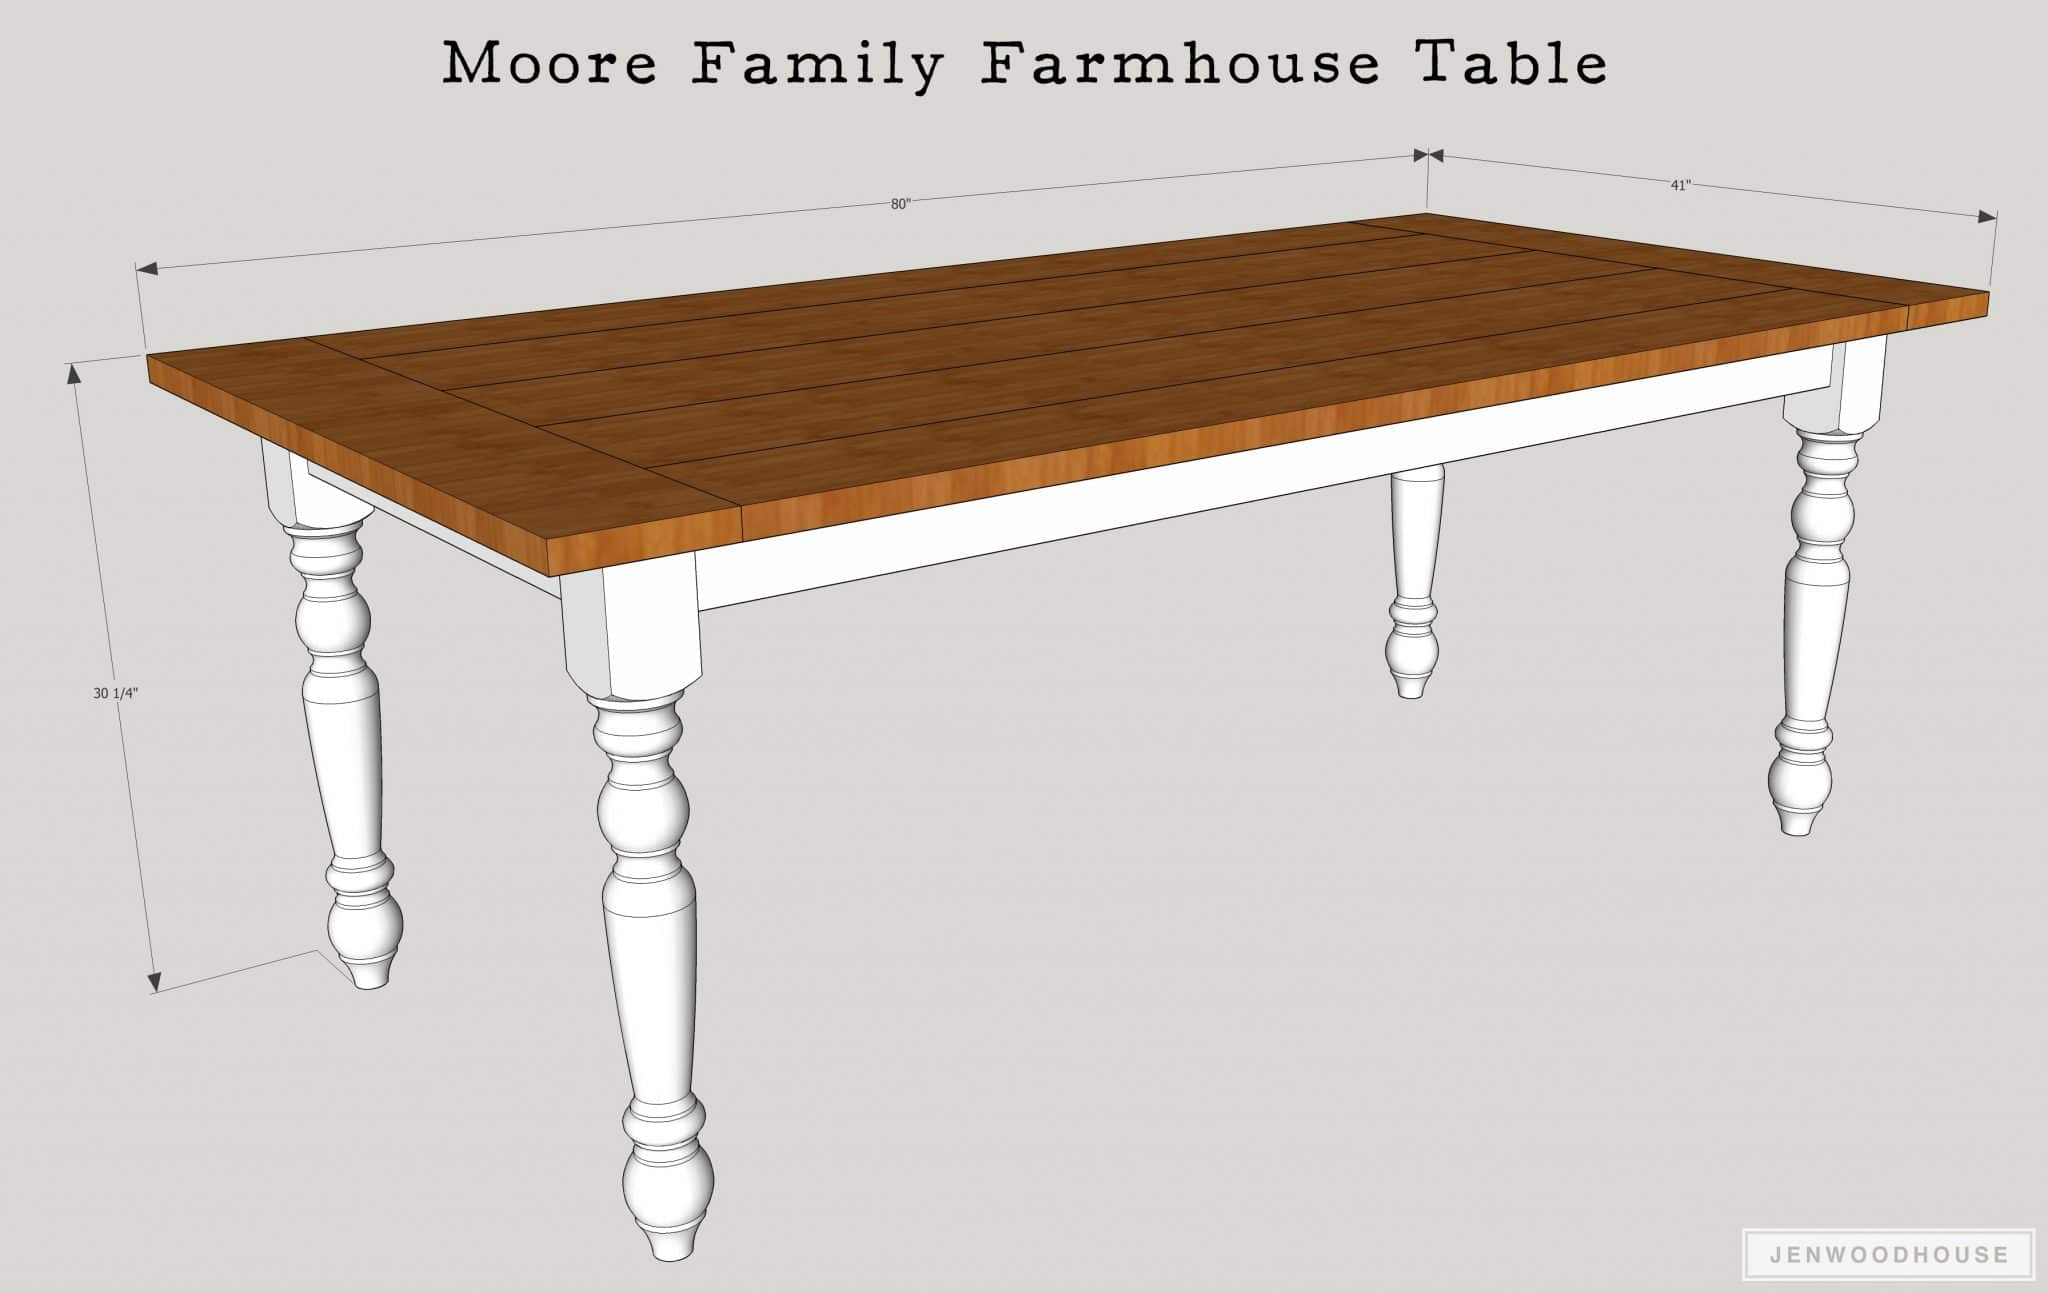 DIY Farmhouse Dining Table - free plans by Jen Woodhouse